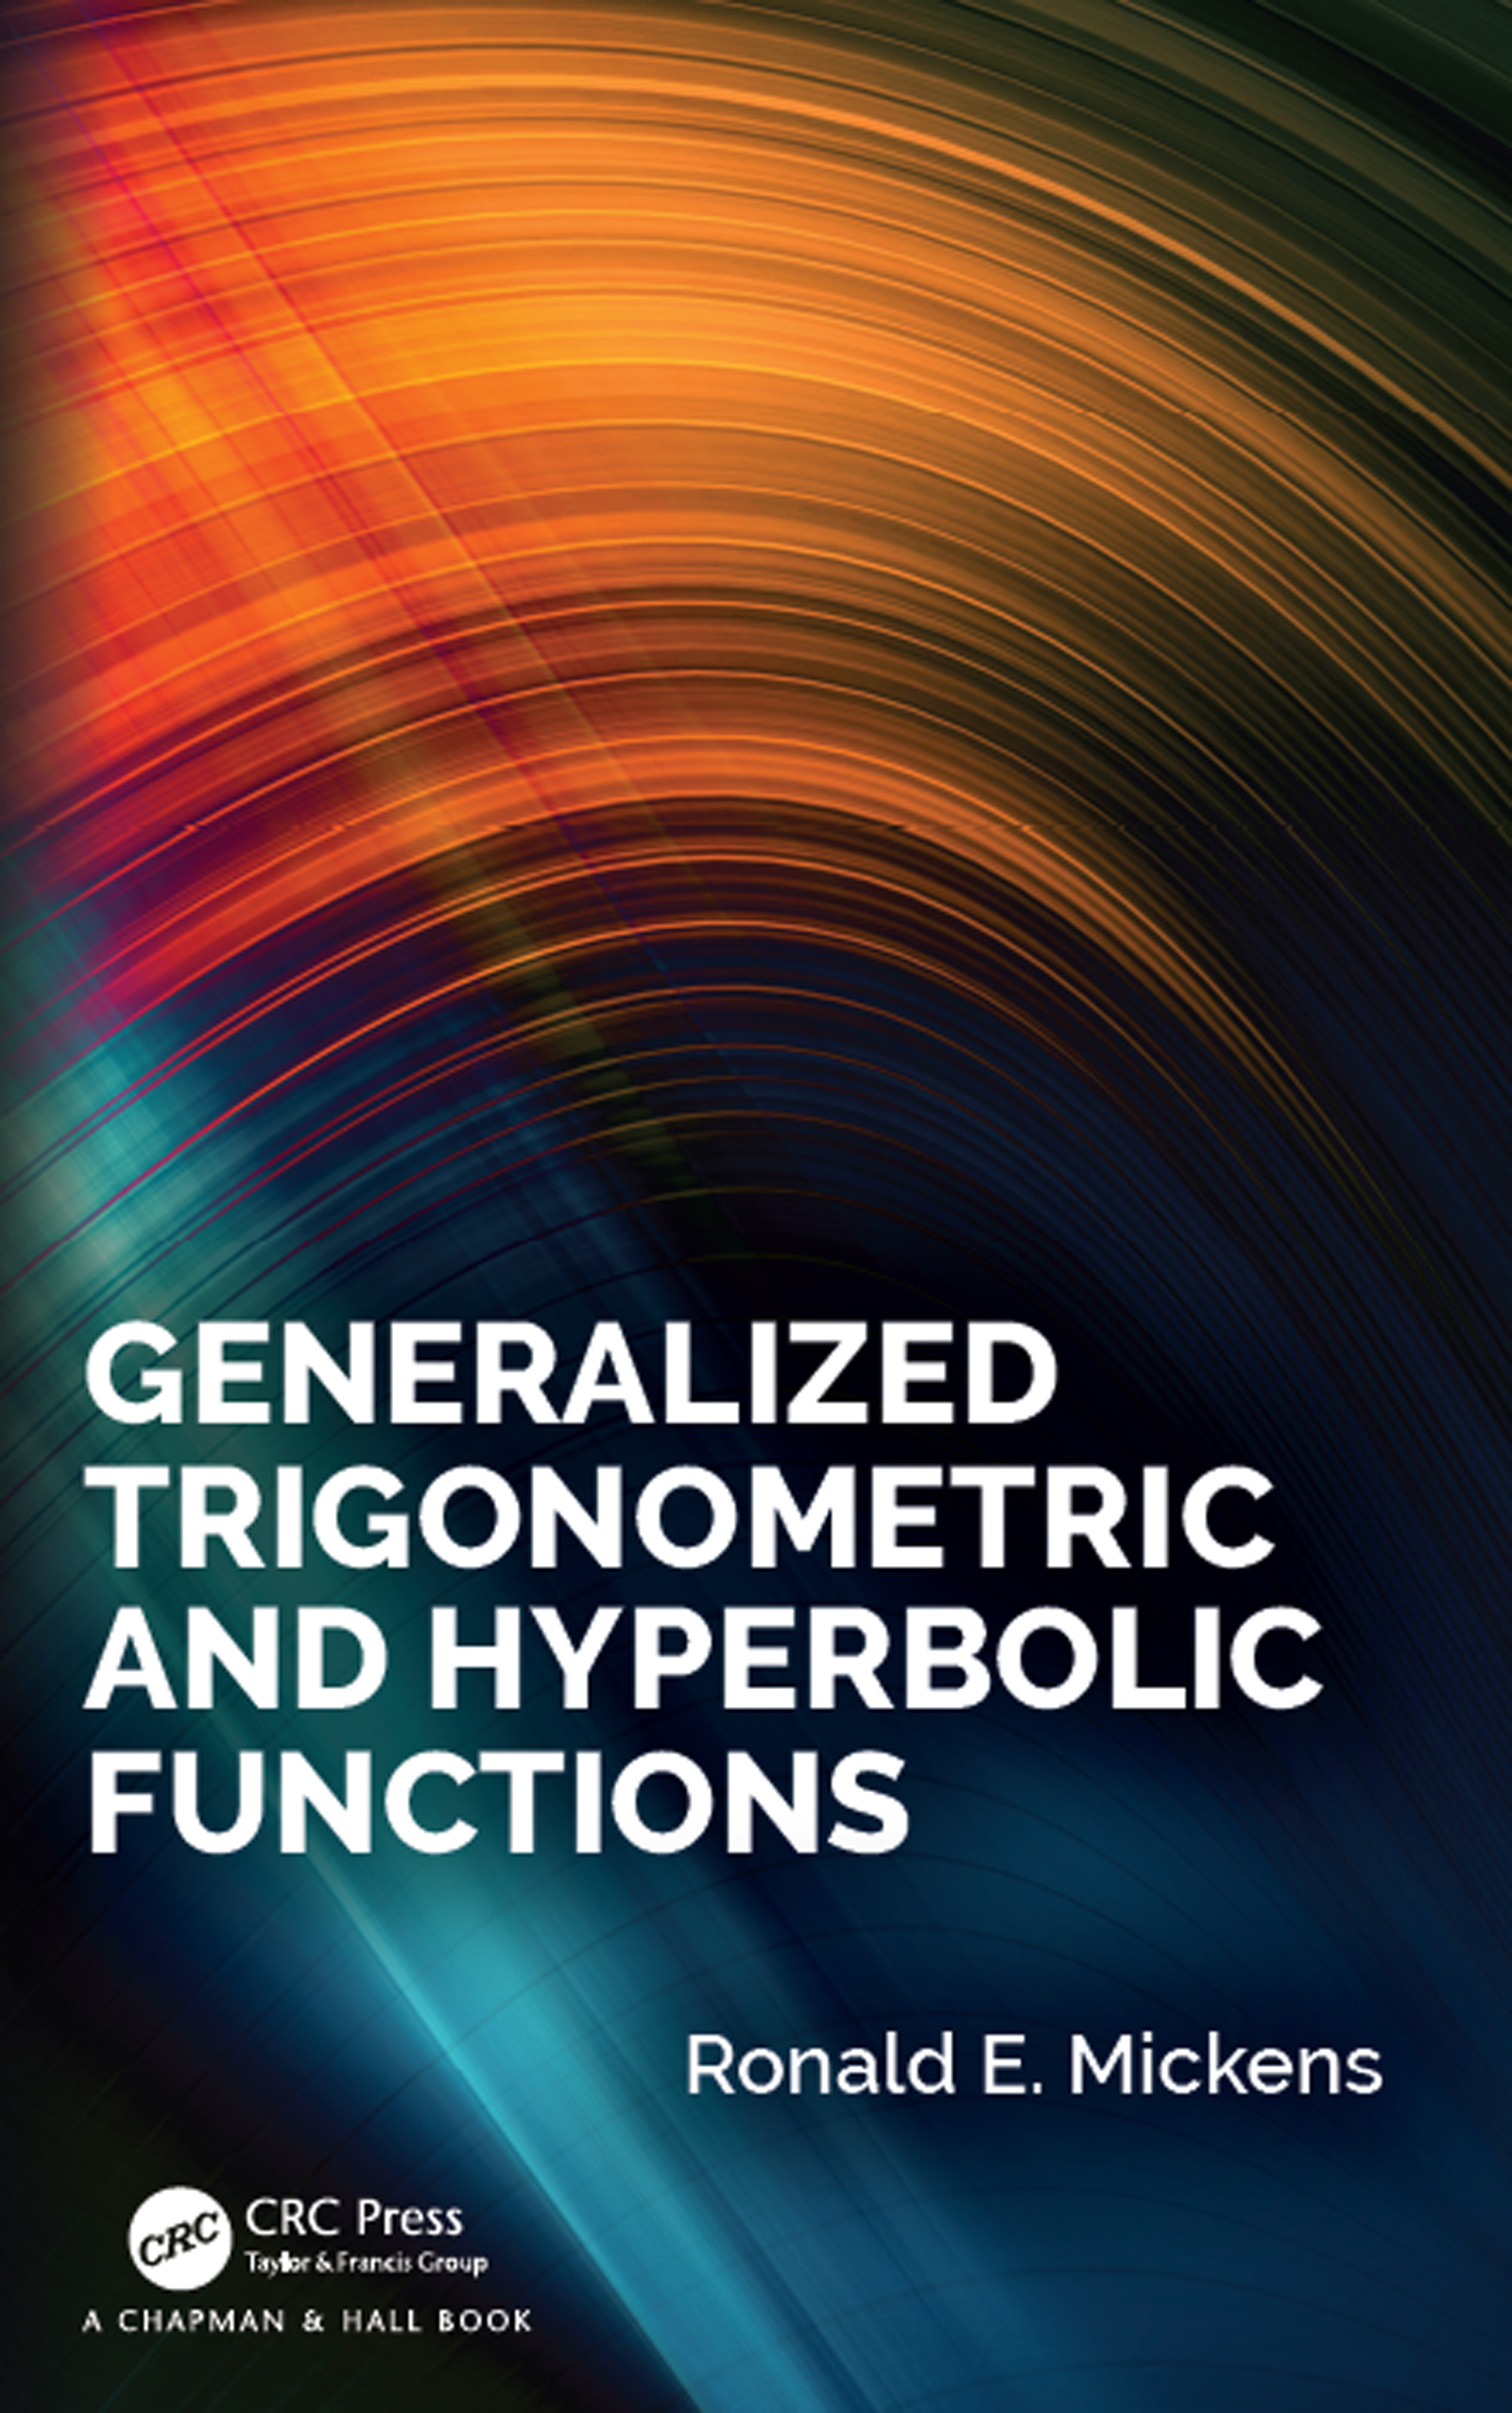 Generalized Trigonometric and Hyperbolic Functions book cover